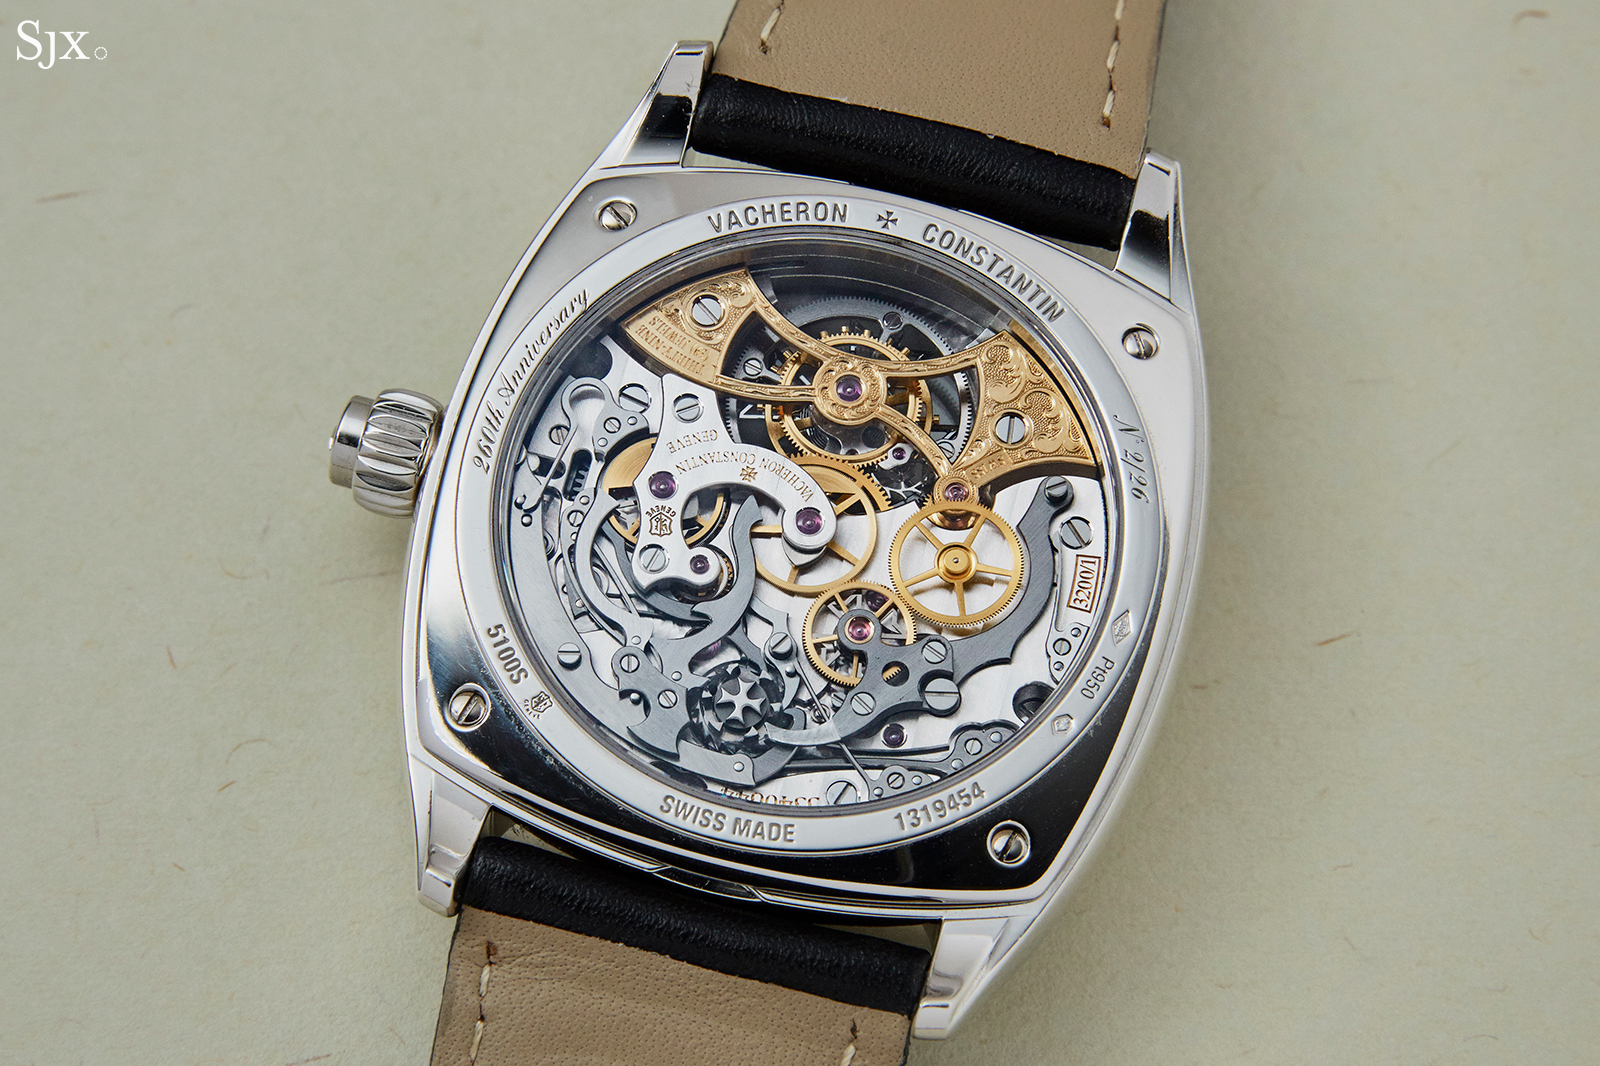 Vacheron Constantin Harmony Chronograph Tourbillon 260th Anniversary back